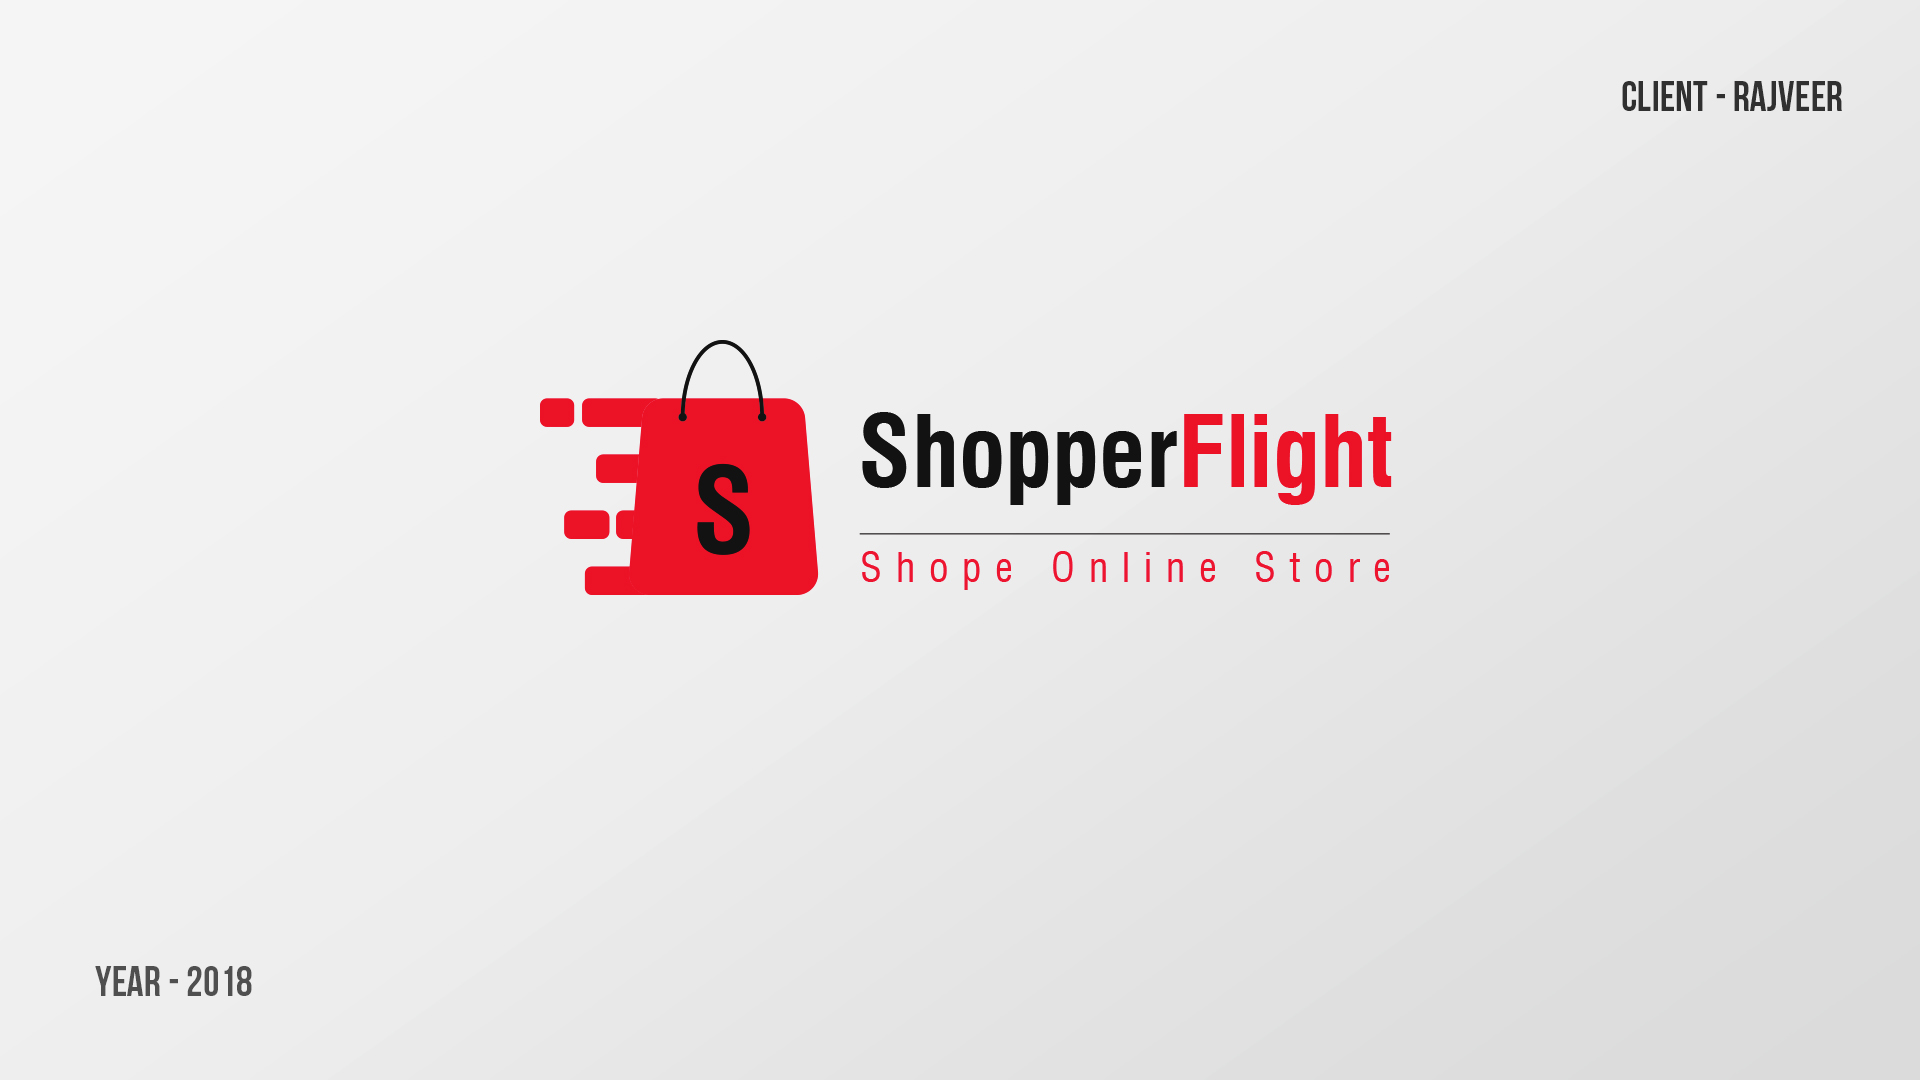 projektowanie logo e-commerce,shopping - evenflowstudio